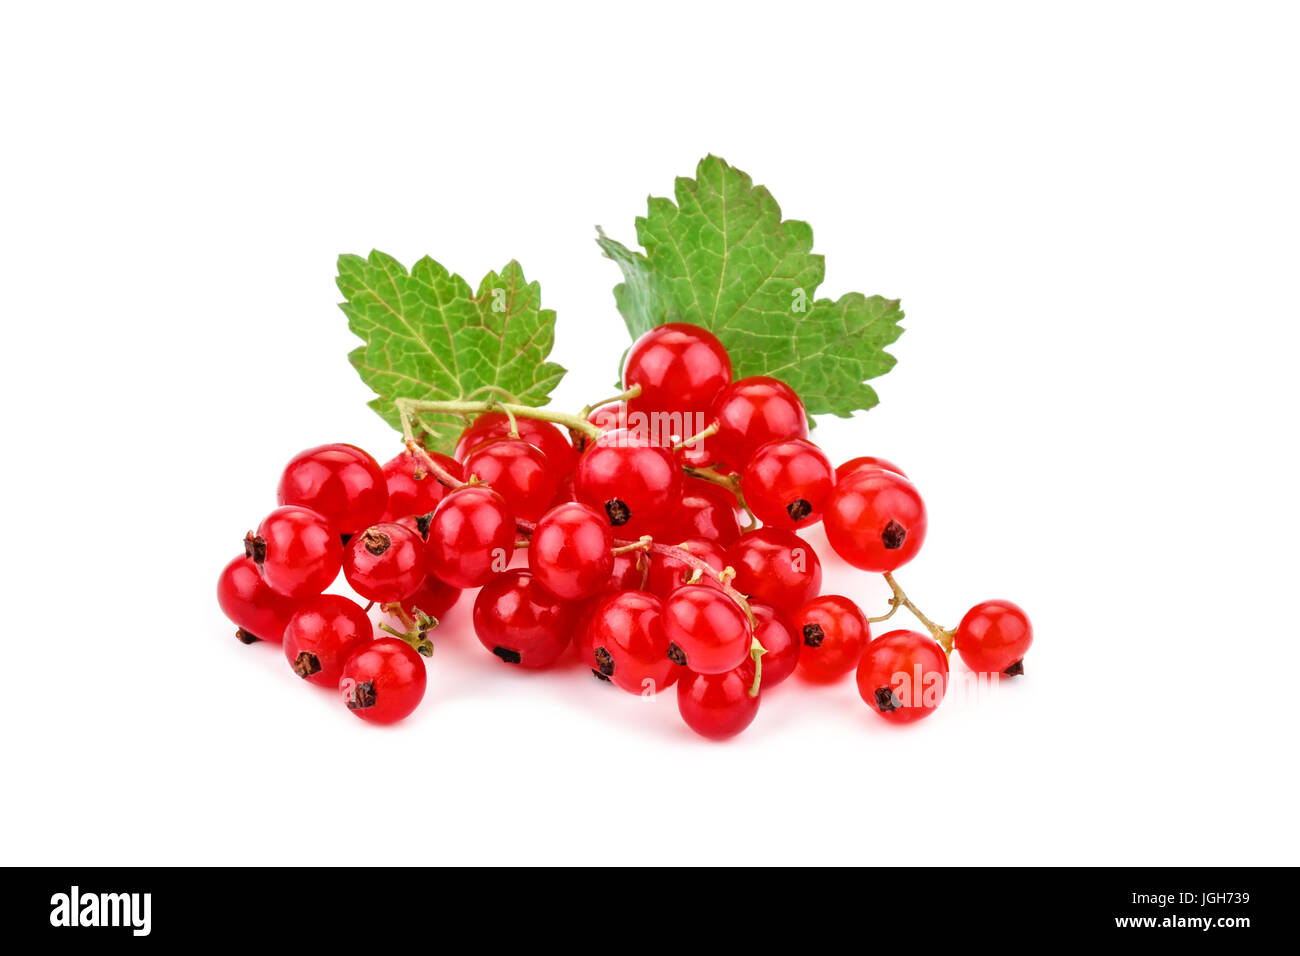 Ripe delicious red currant white background. - Stock Image